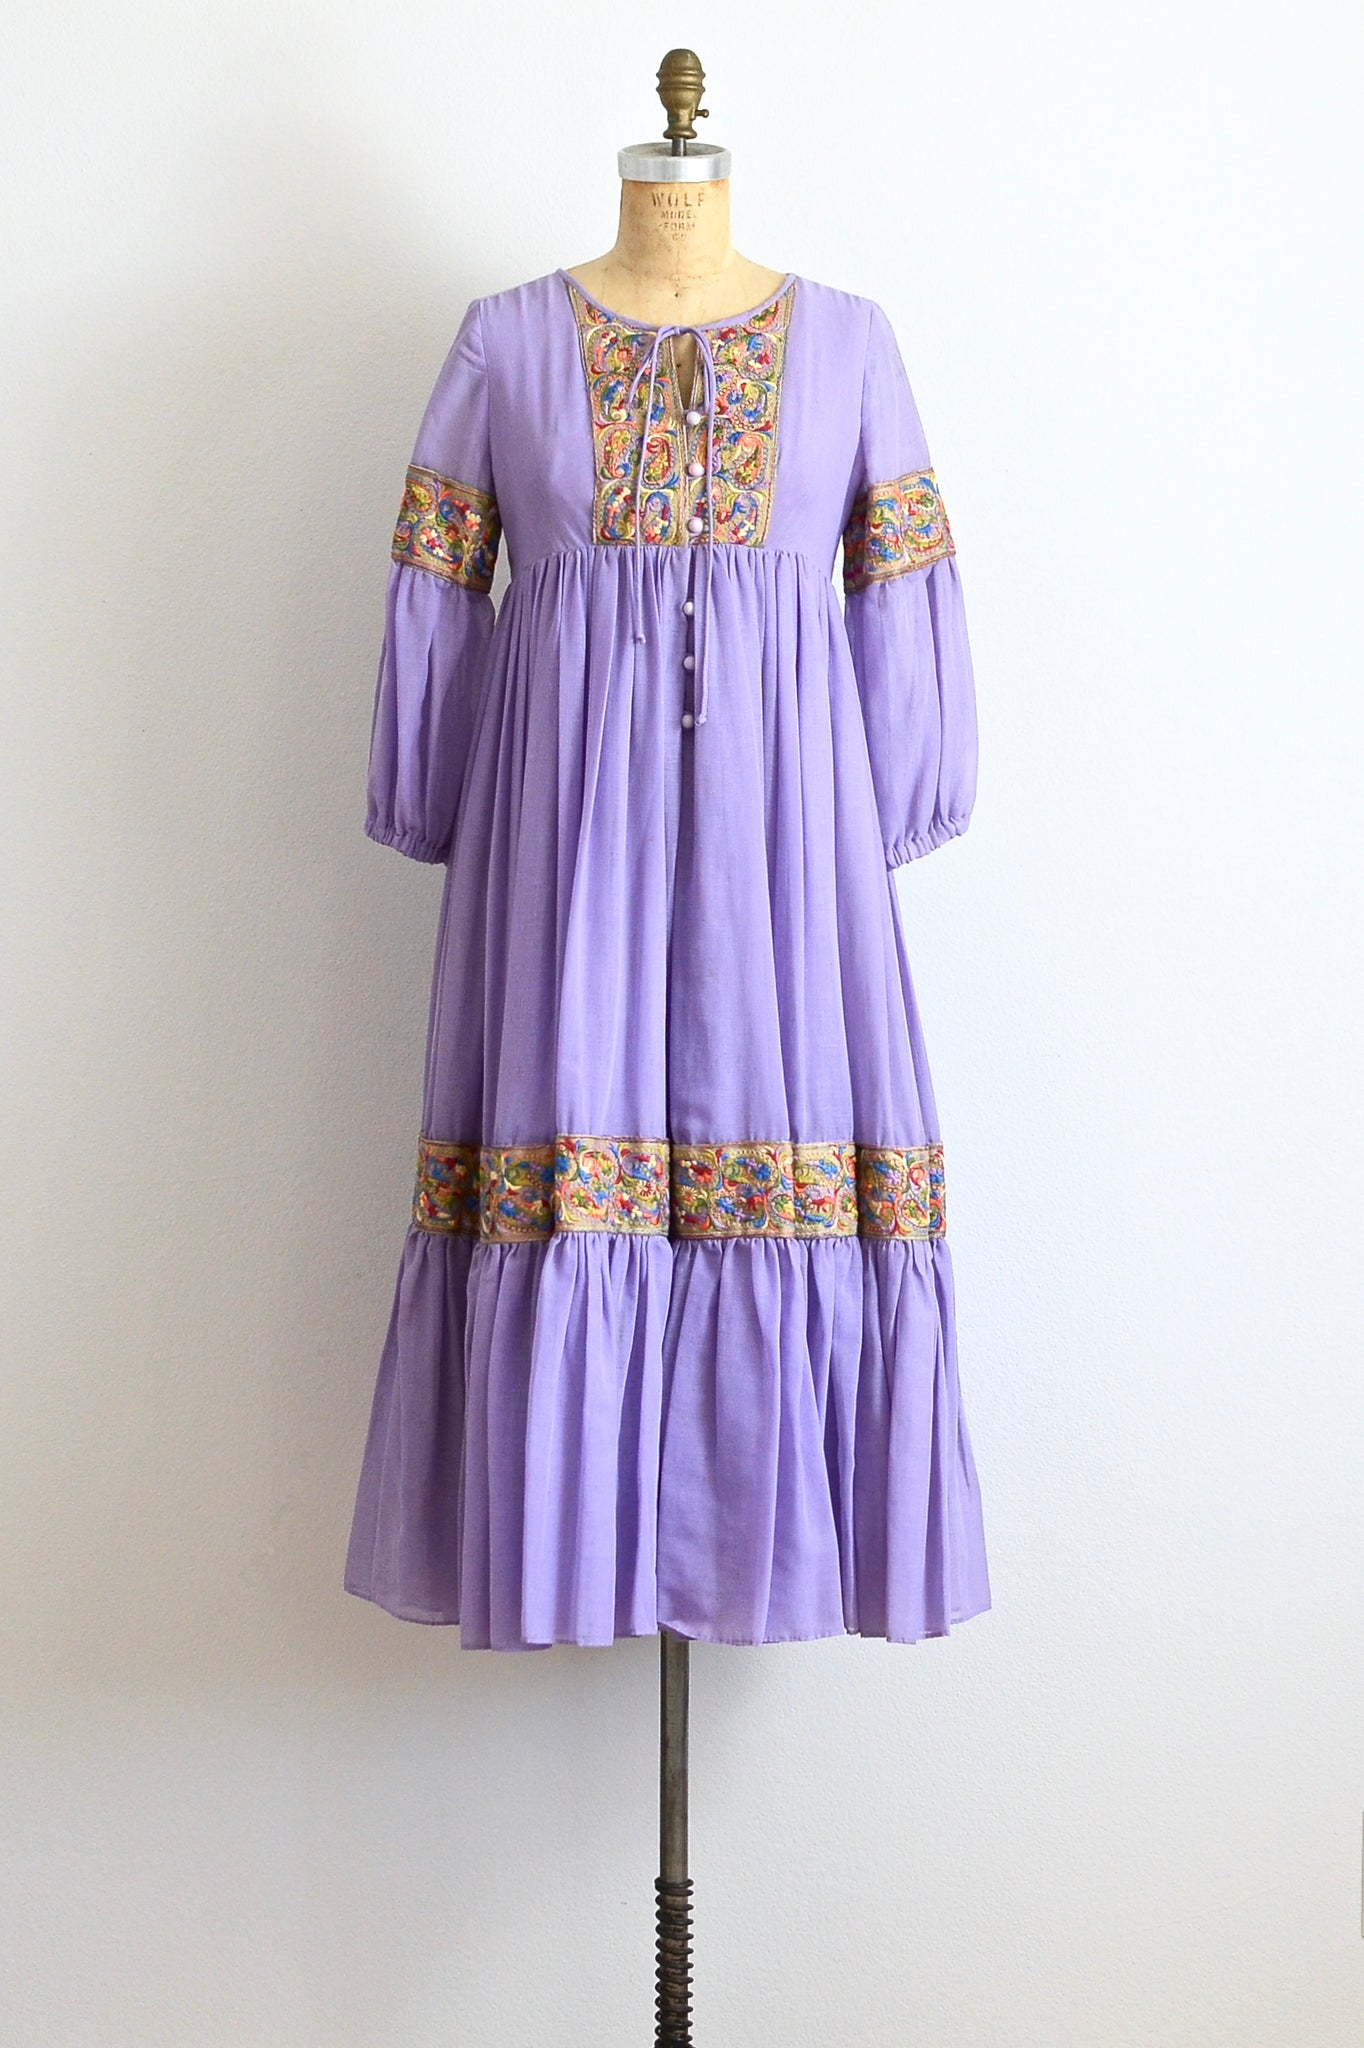 1970s Festival Dress - Pickled Vintage